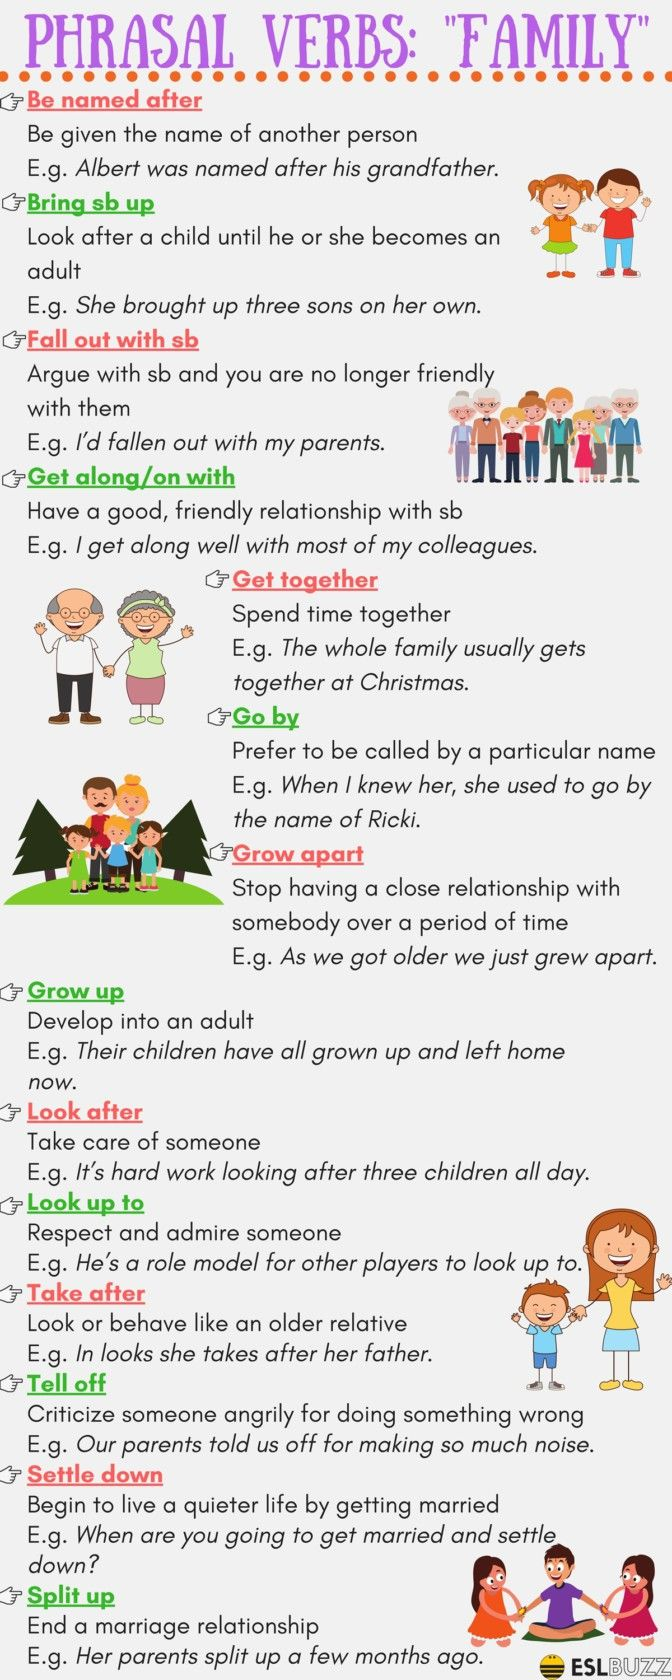 English Phrasal Verbs For Communication With Useful Examples Fluent Land English Language Learning English Phrases English Time [ 1680 x 672 Pixel ]